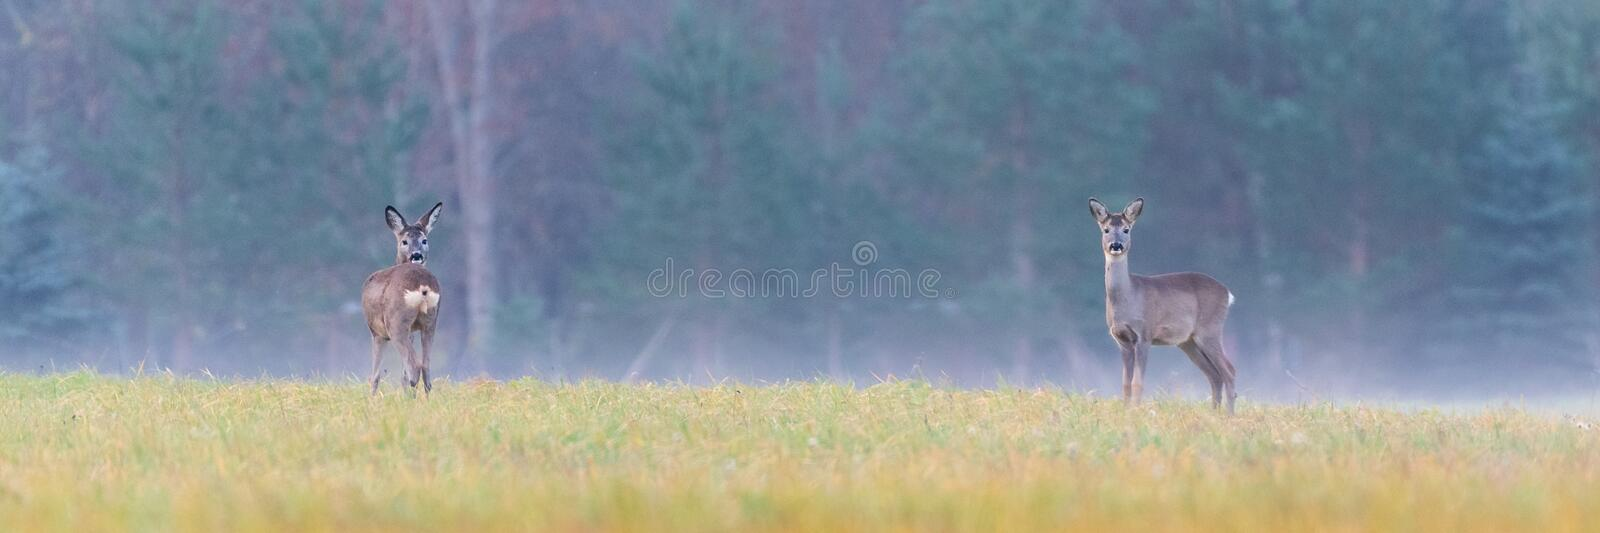 Roe deers on a field in a foggy morning. Two Roe deers standing on a field in a foggy morning royalty free stock image